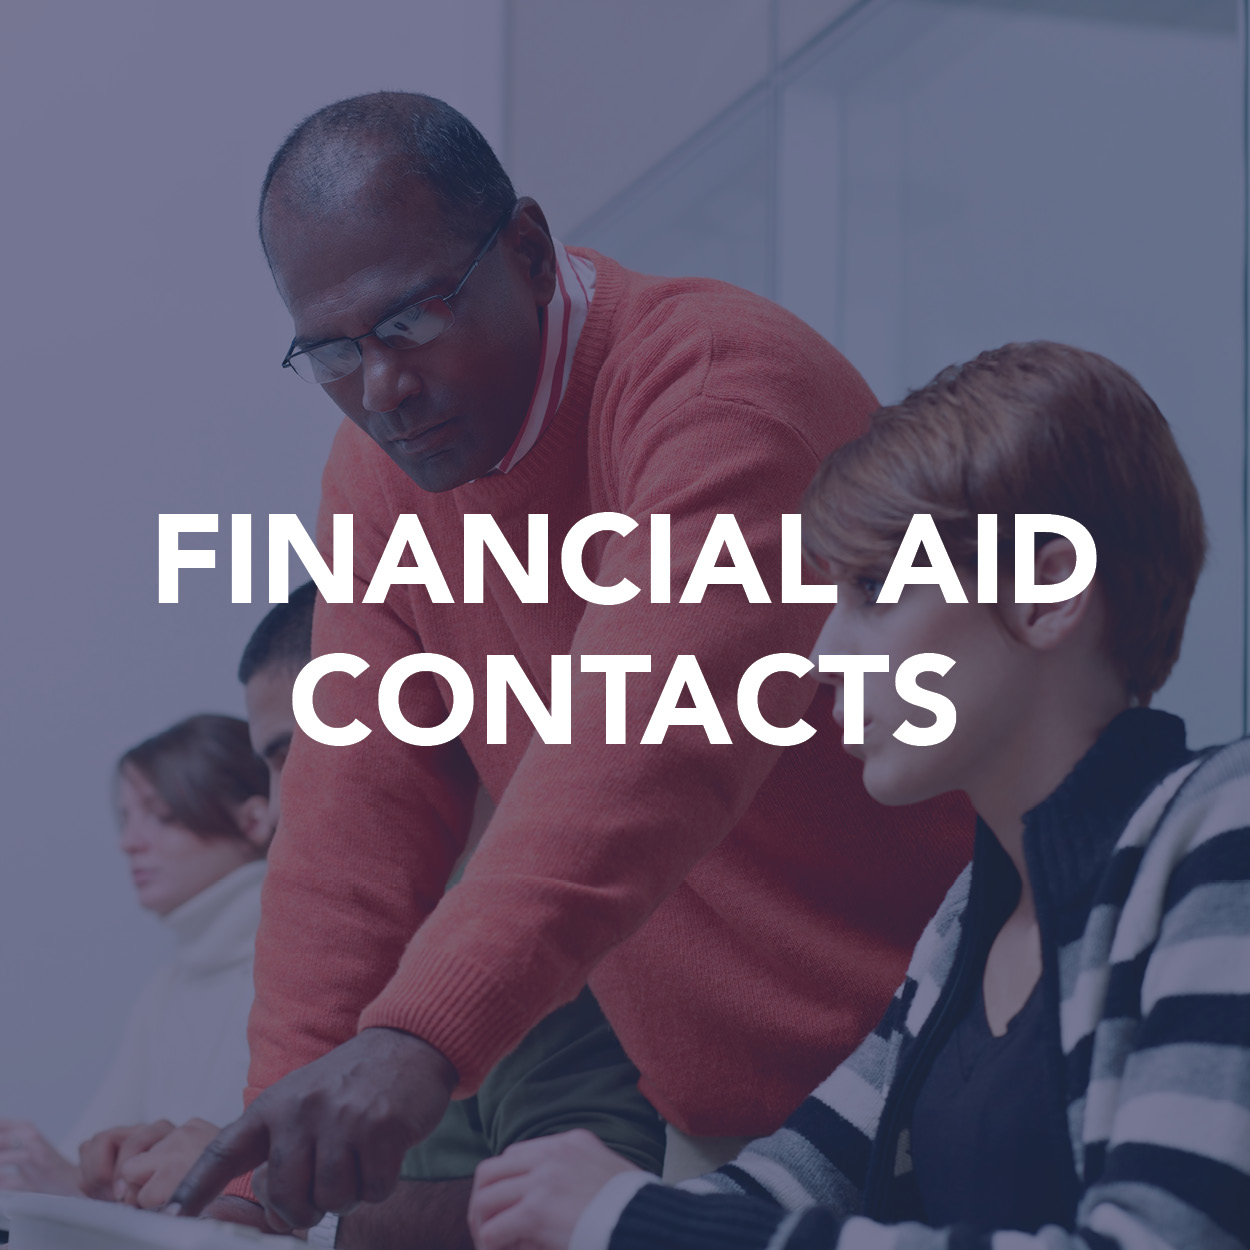 Financial Aid contacts